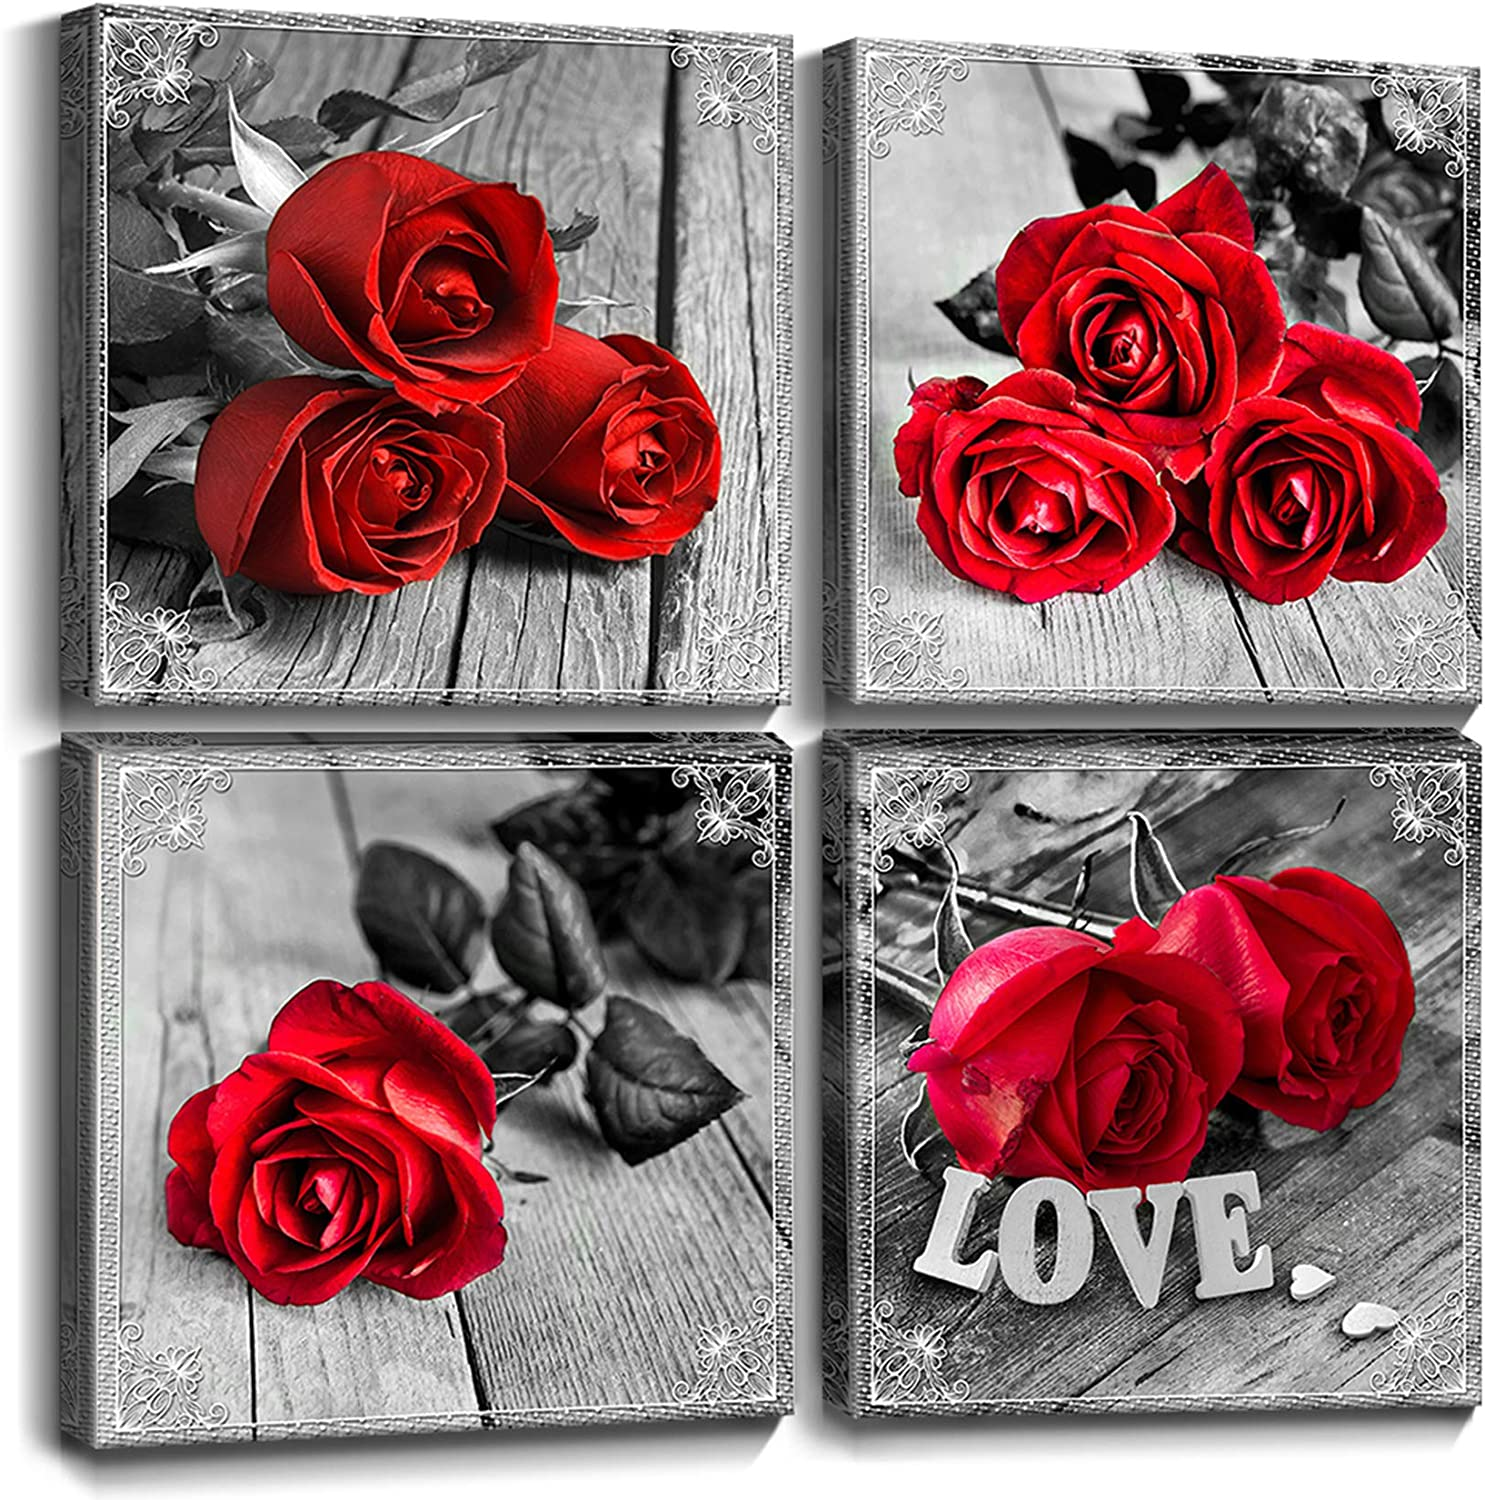 Red Wall Decor for Living Room Pictures Rose Flowers Bedroom Wall Art for Couples 12x12